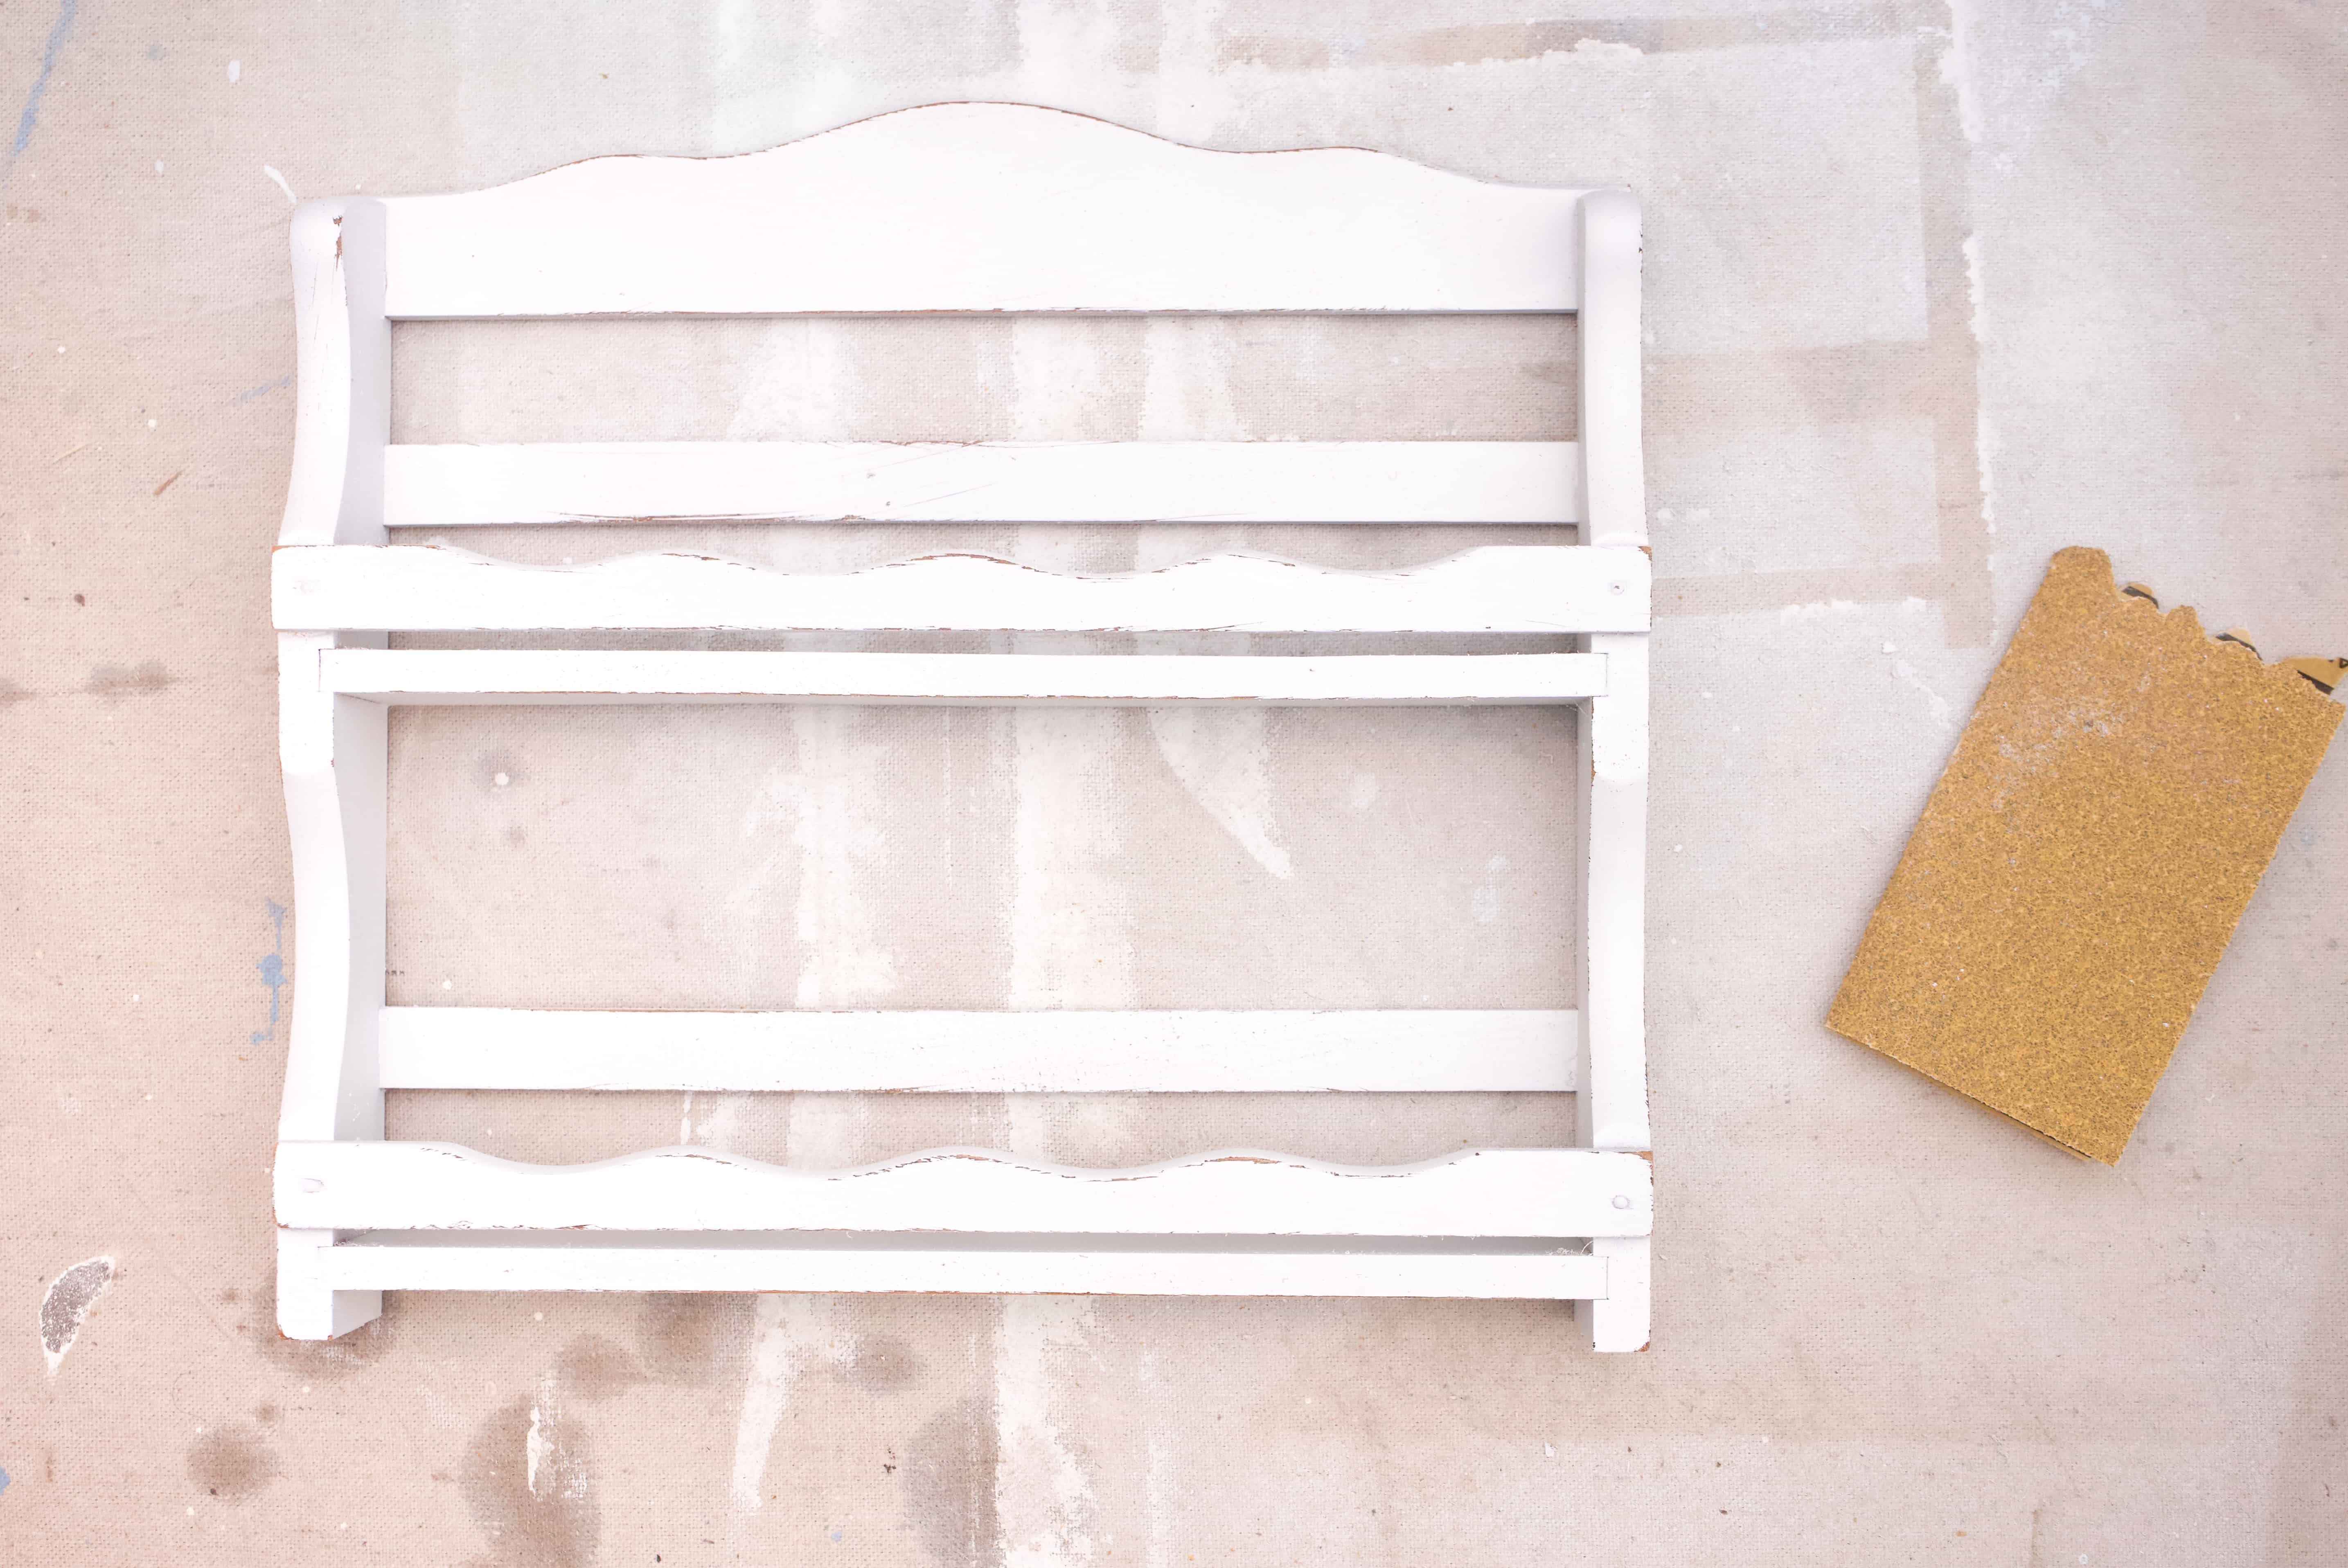 Check out this simple spice rack upcycle. It's so easy to turn thrift store finds into adorable decor.